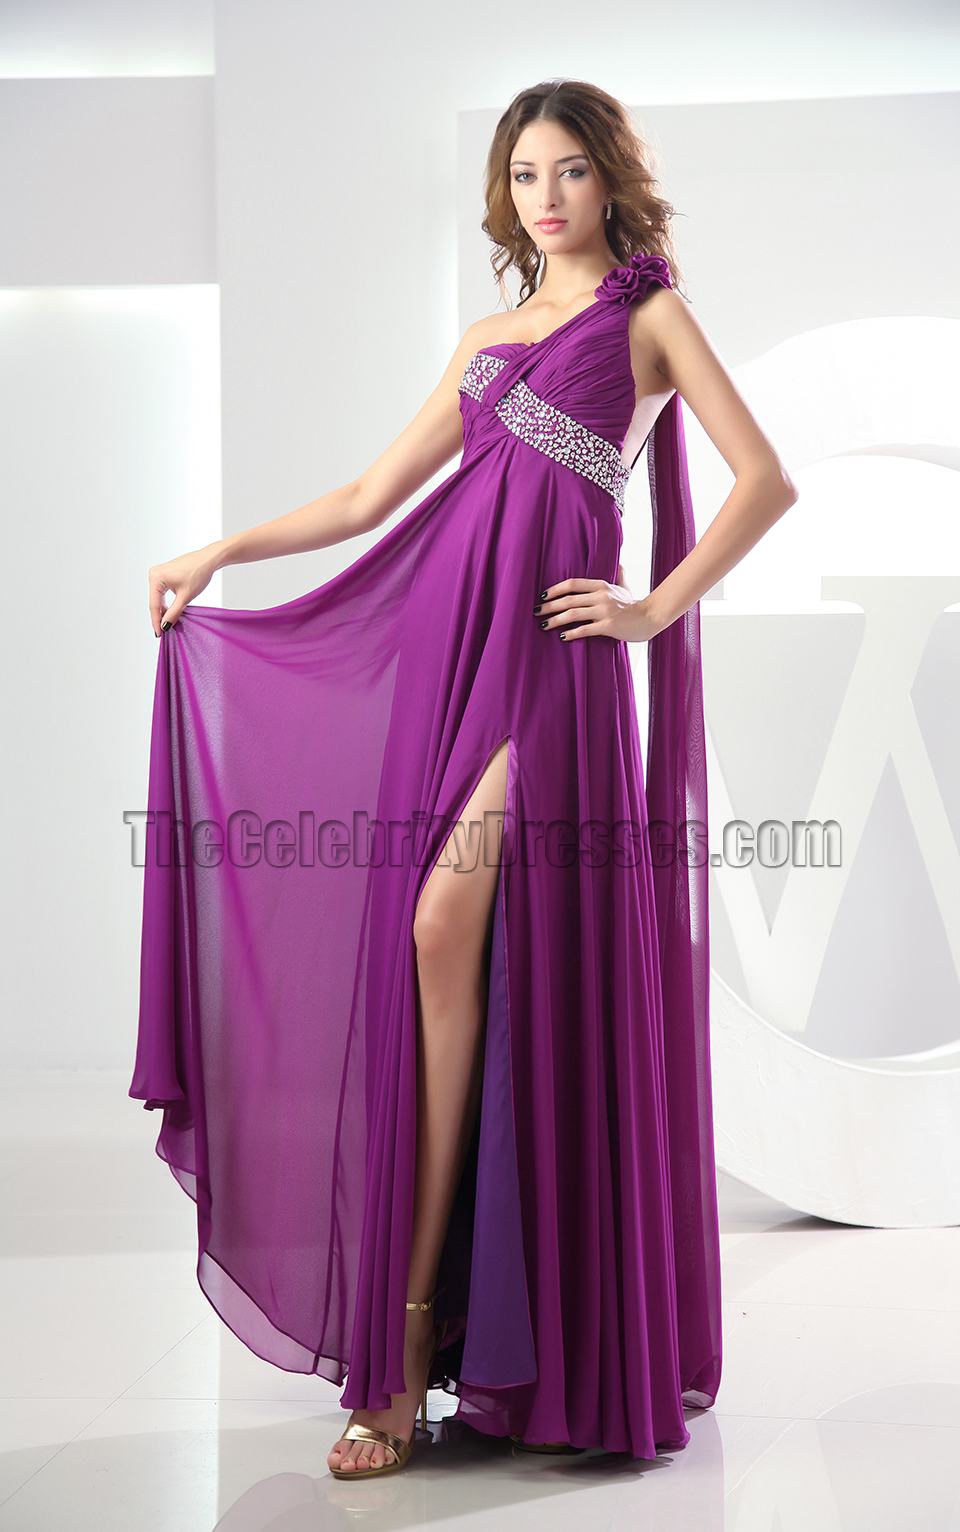 Sexy Backless Purple One Shoulder Prom Gown Evening Dress - TheCelebrityDresses